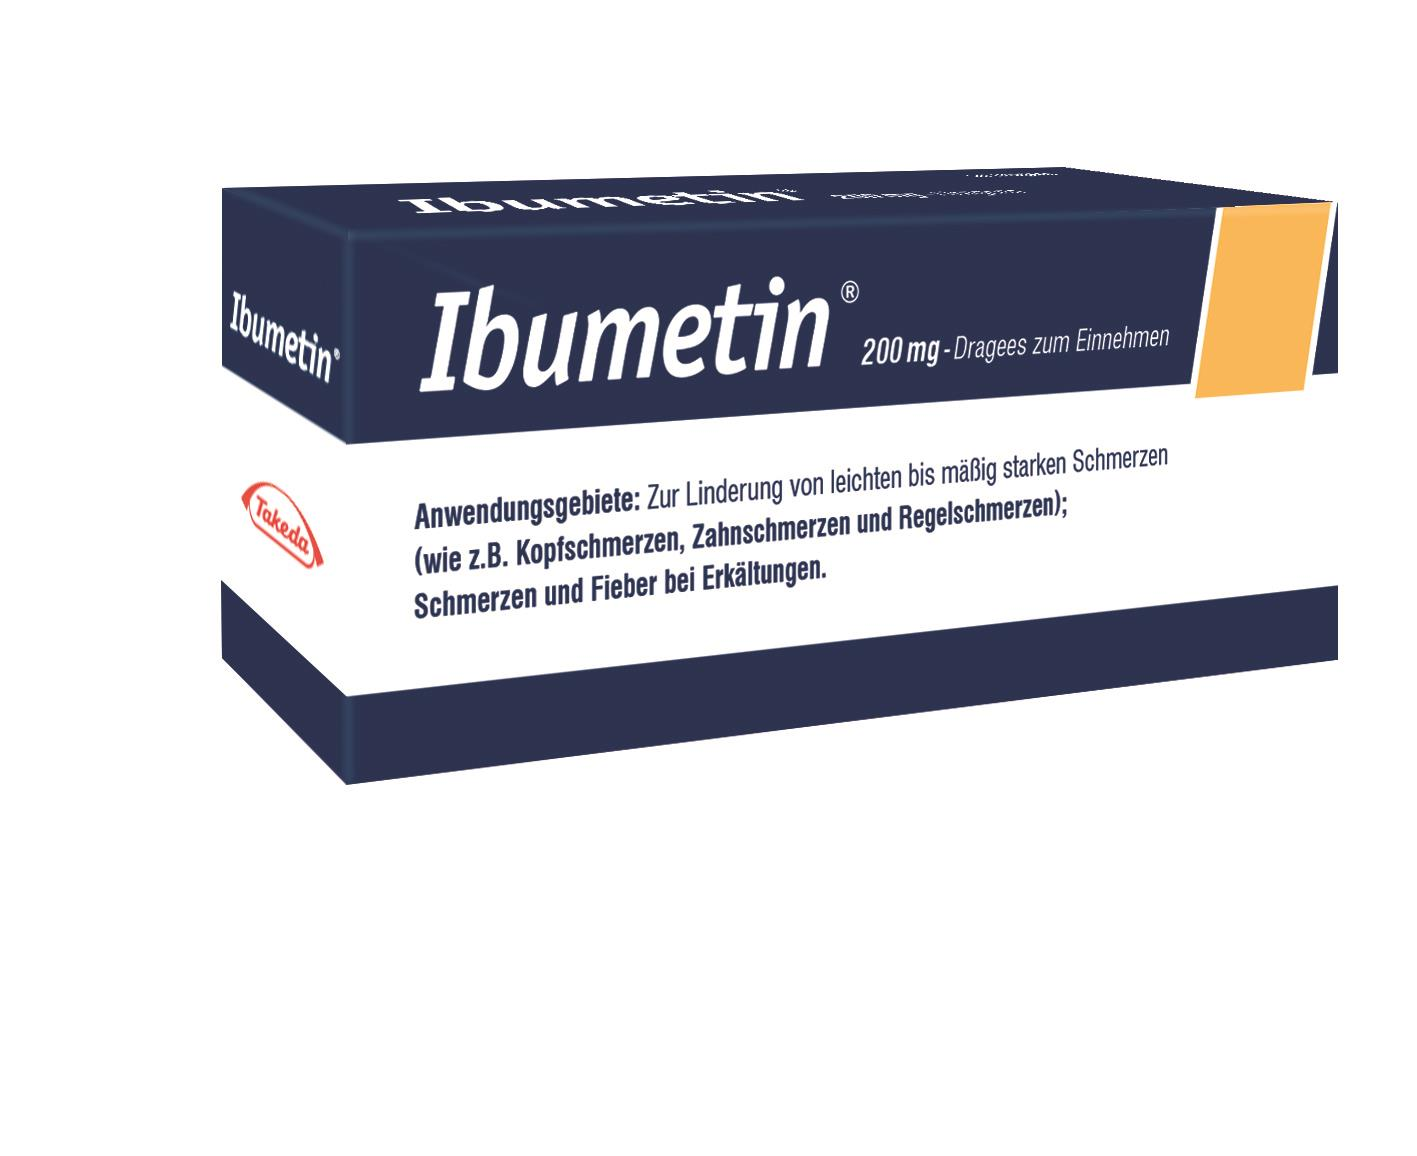 Ibumetin 200 mg - Dragees